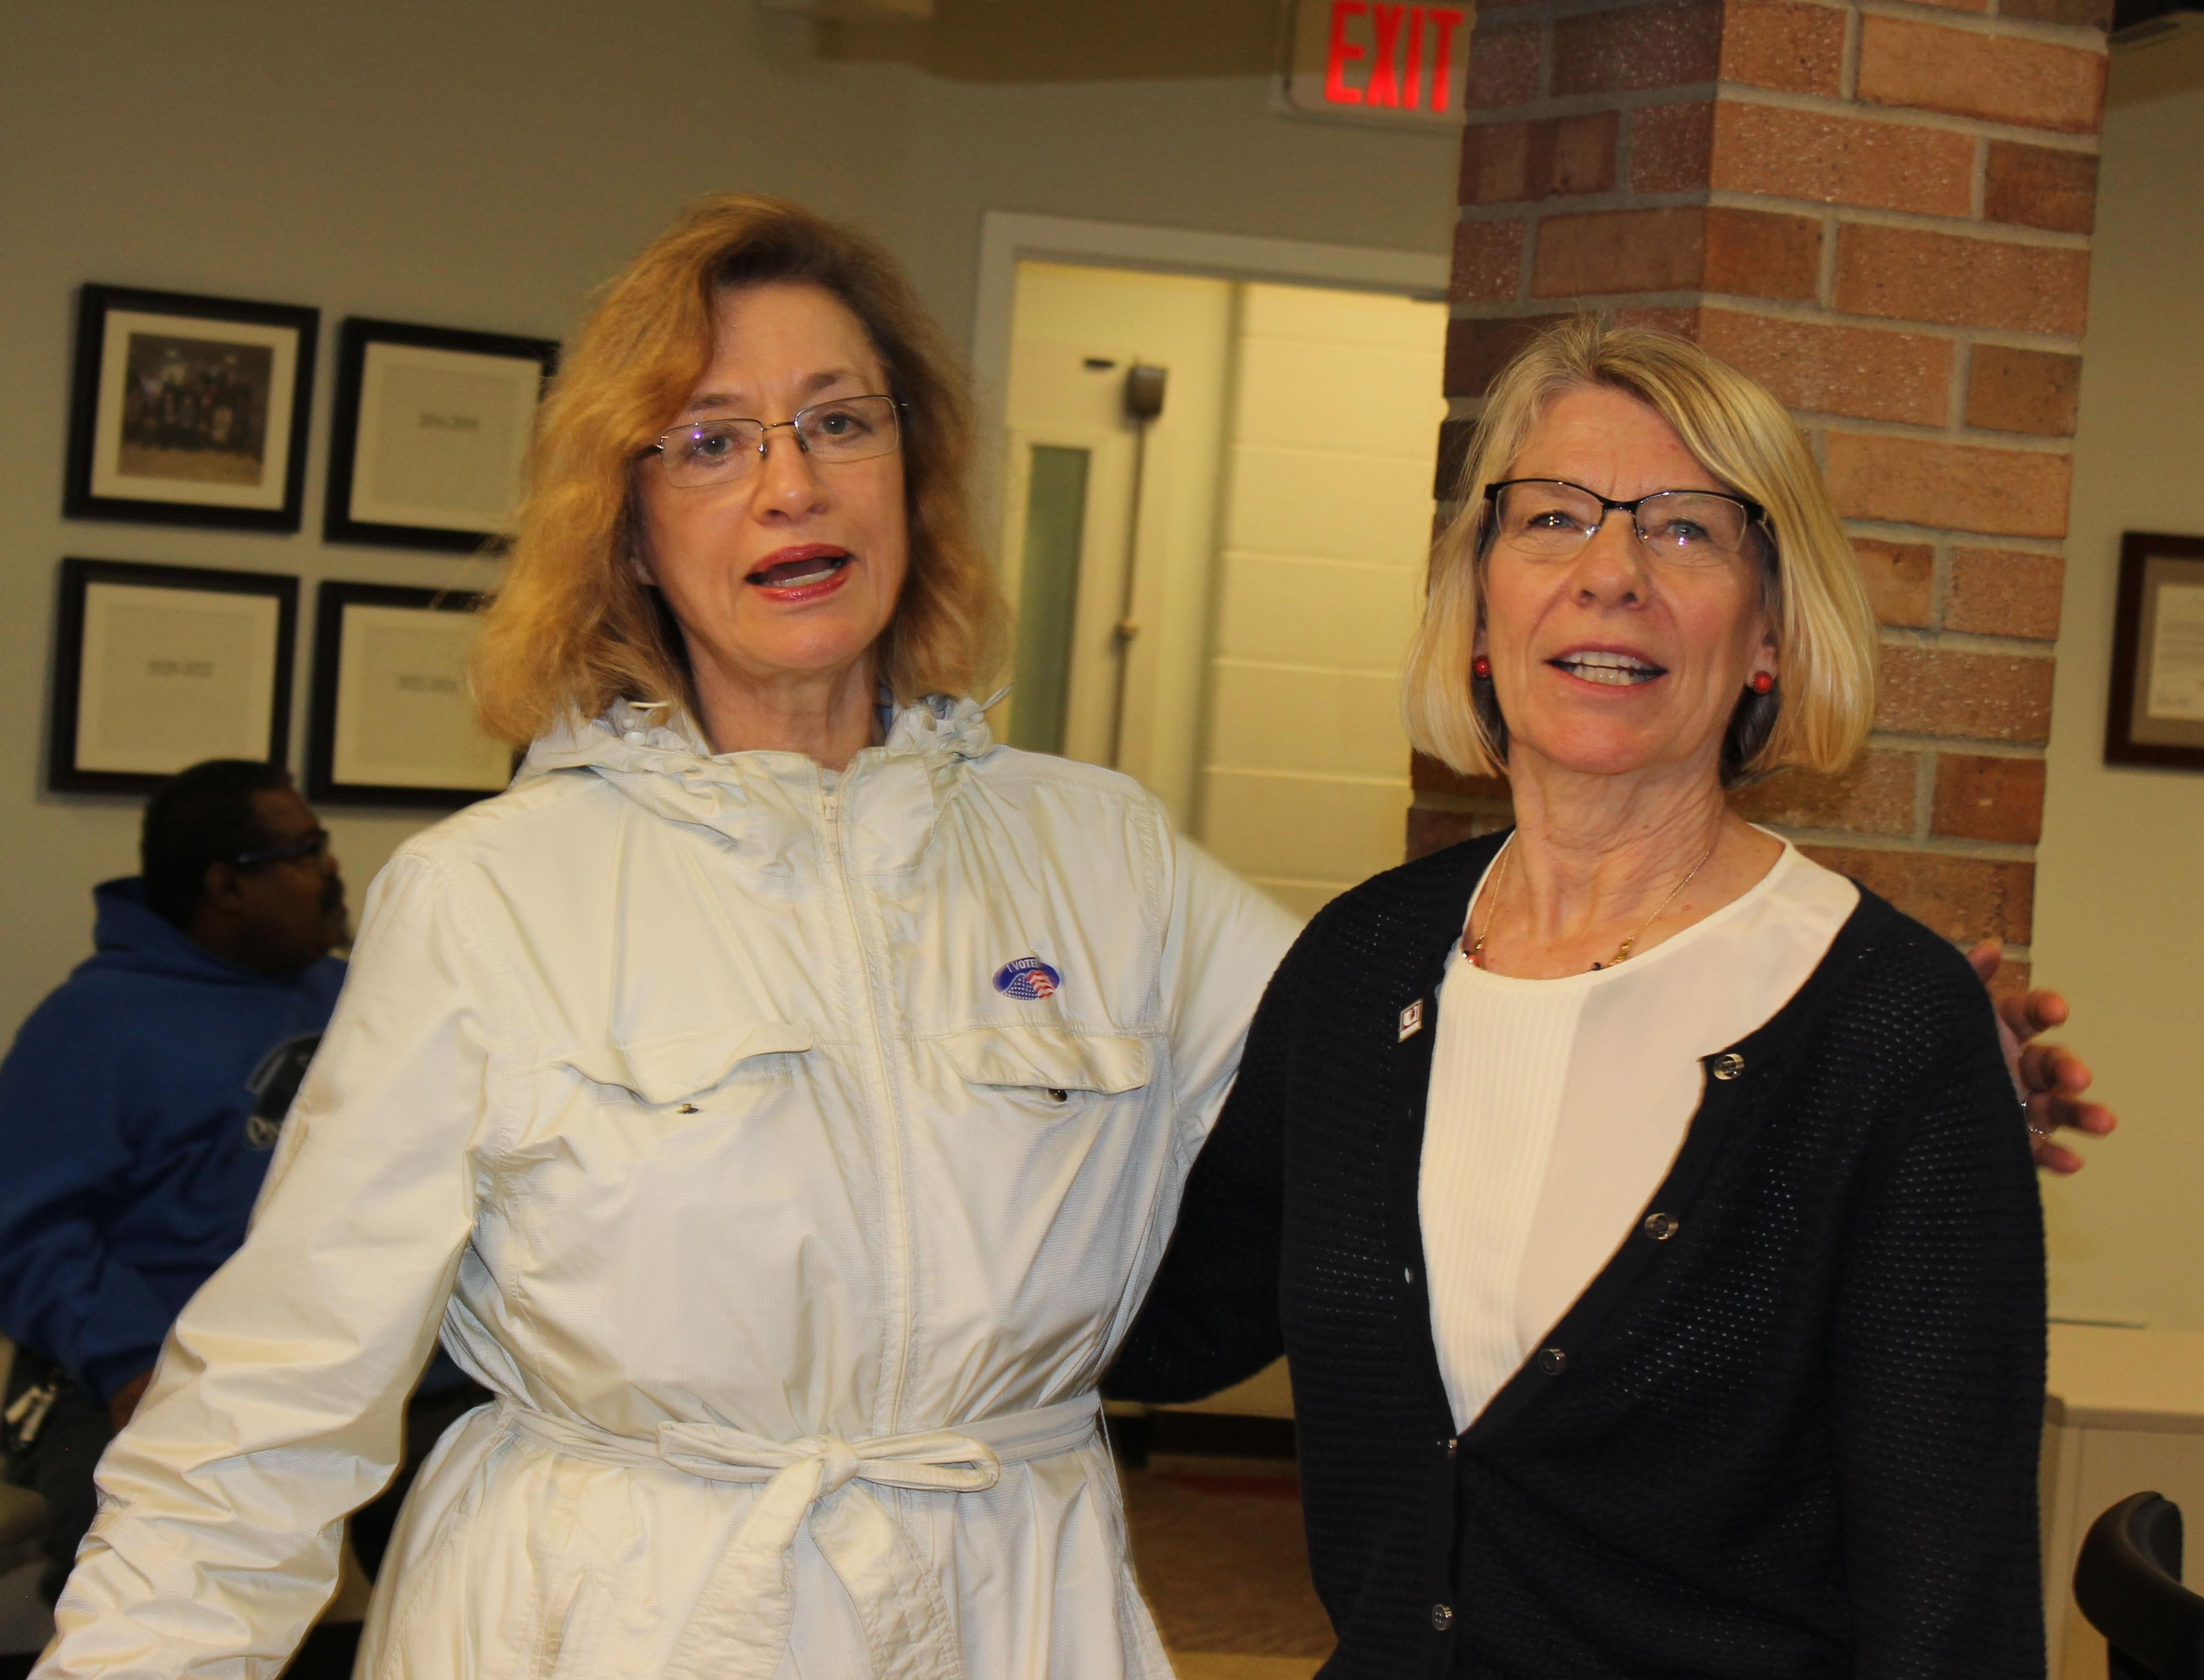 Mayor Laurel Prussing with Alderwoman Diane Marlin at the Brookens Administrative Center Tuesday night.